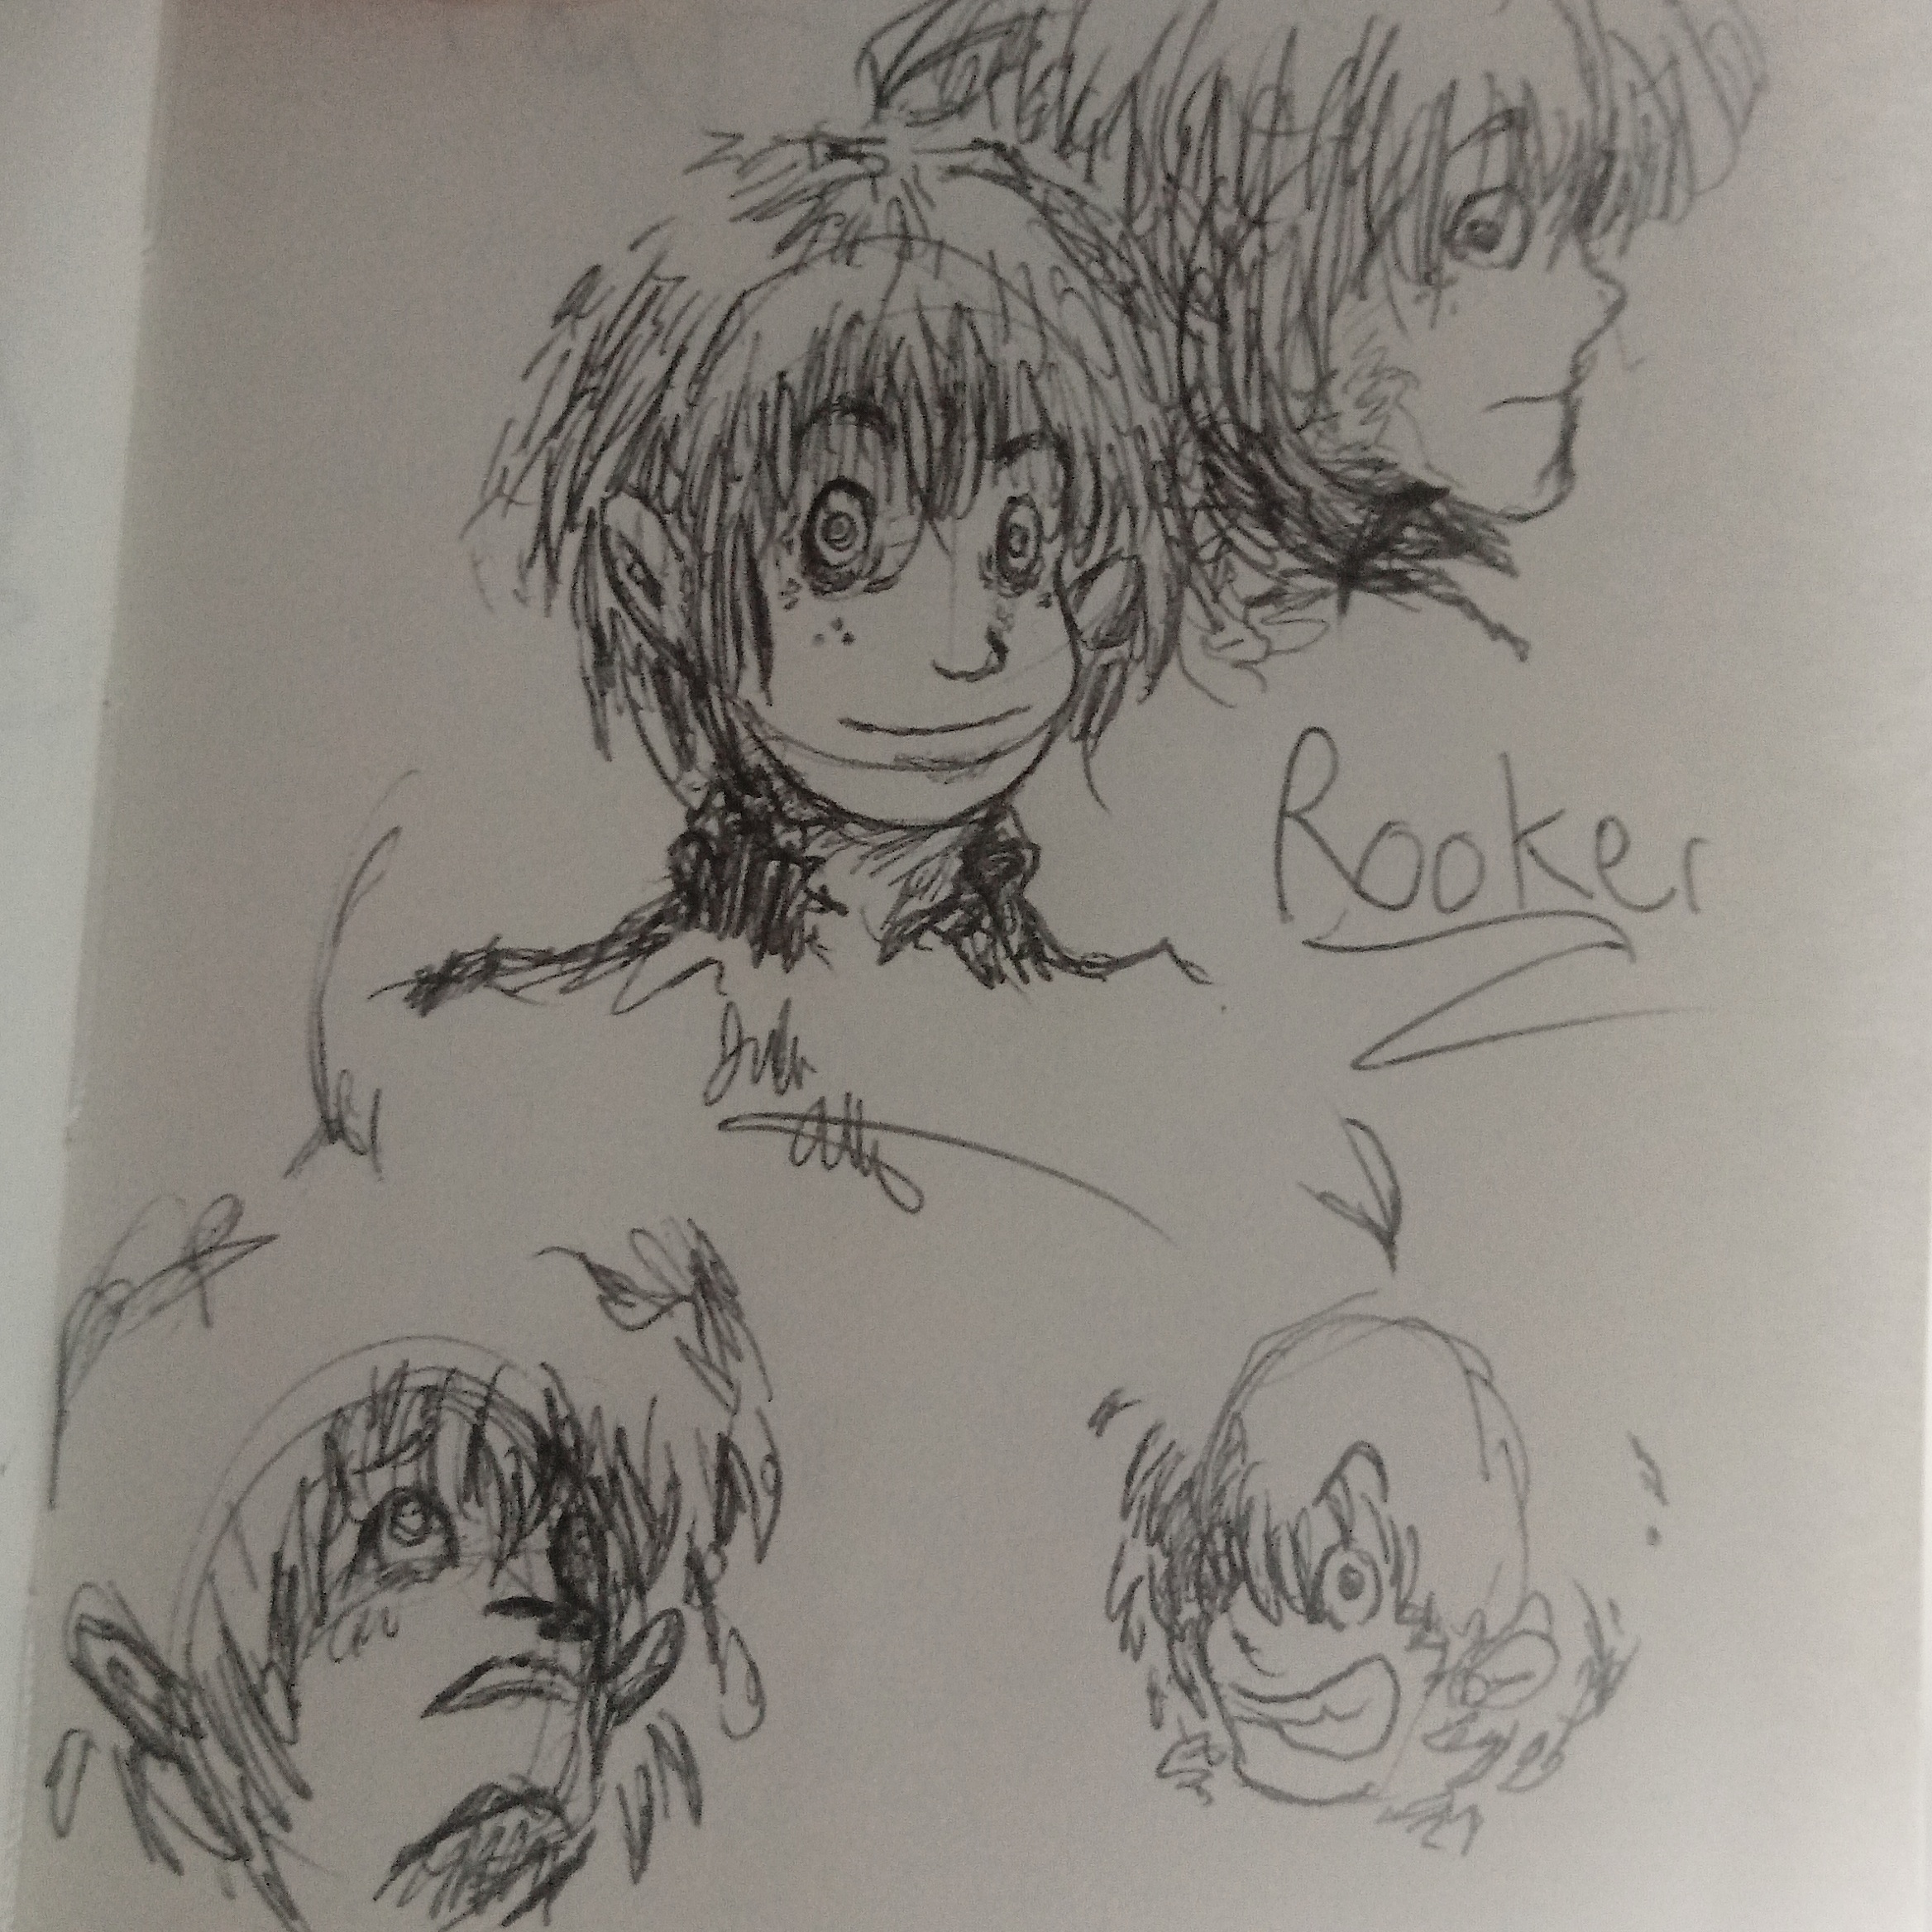 Rooker Sketches